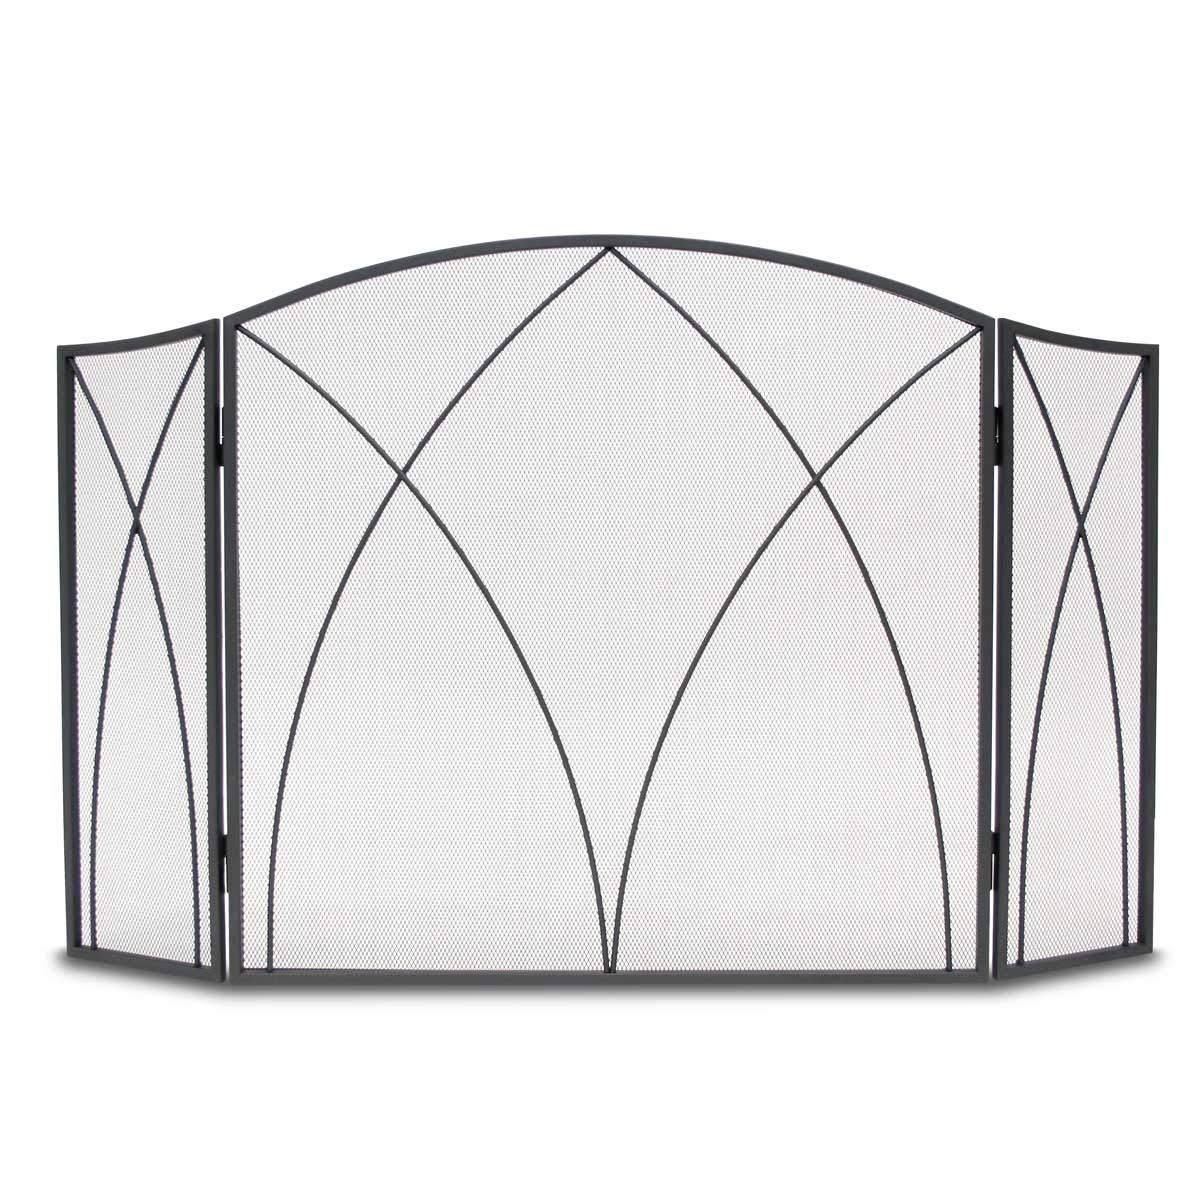 Napa Forge Spire Fireplace screen with arch frame 3 panels Black